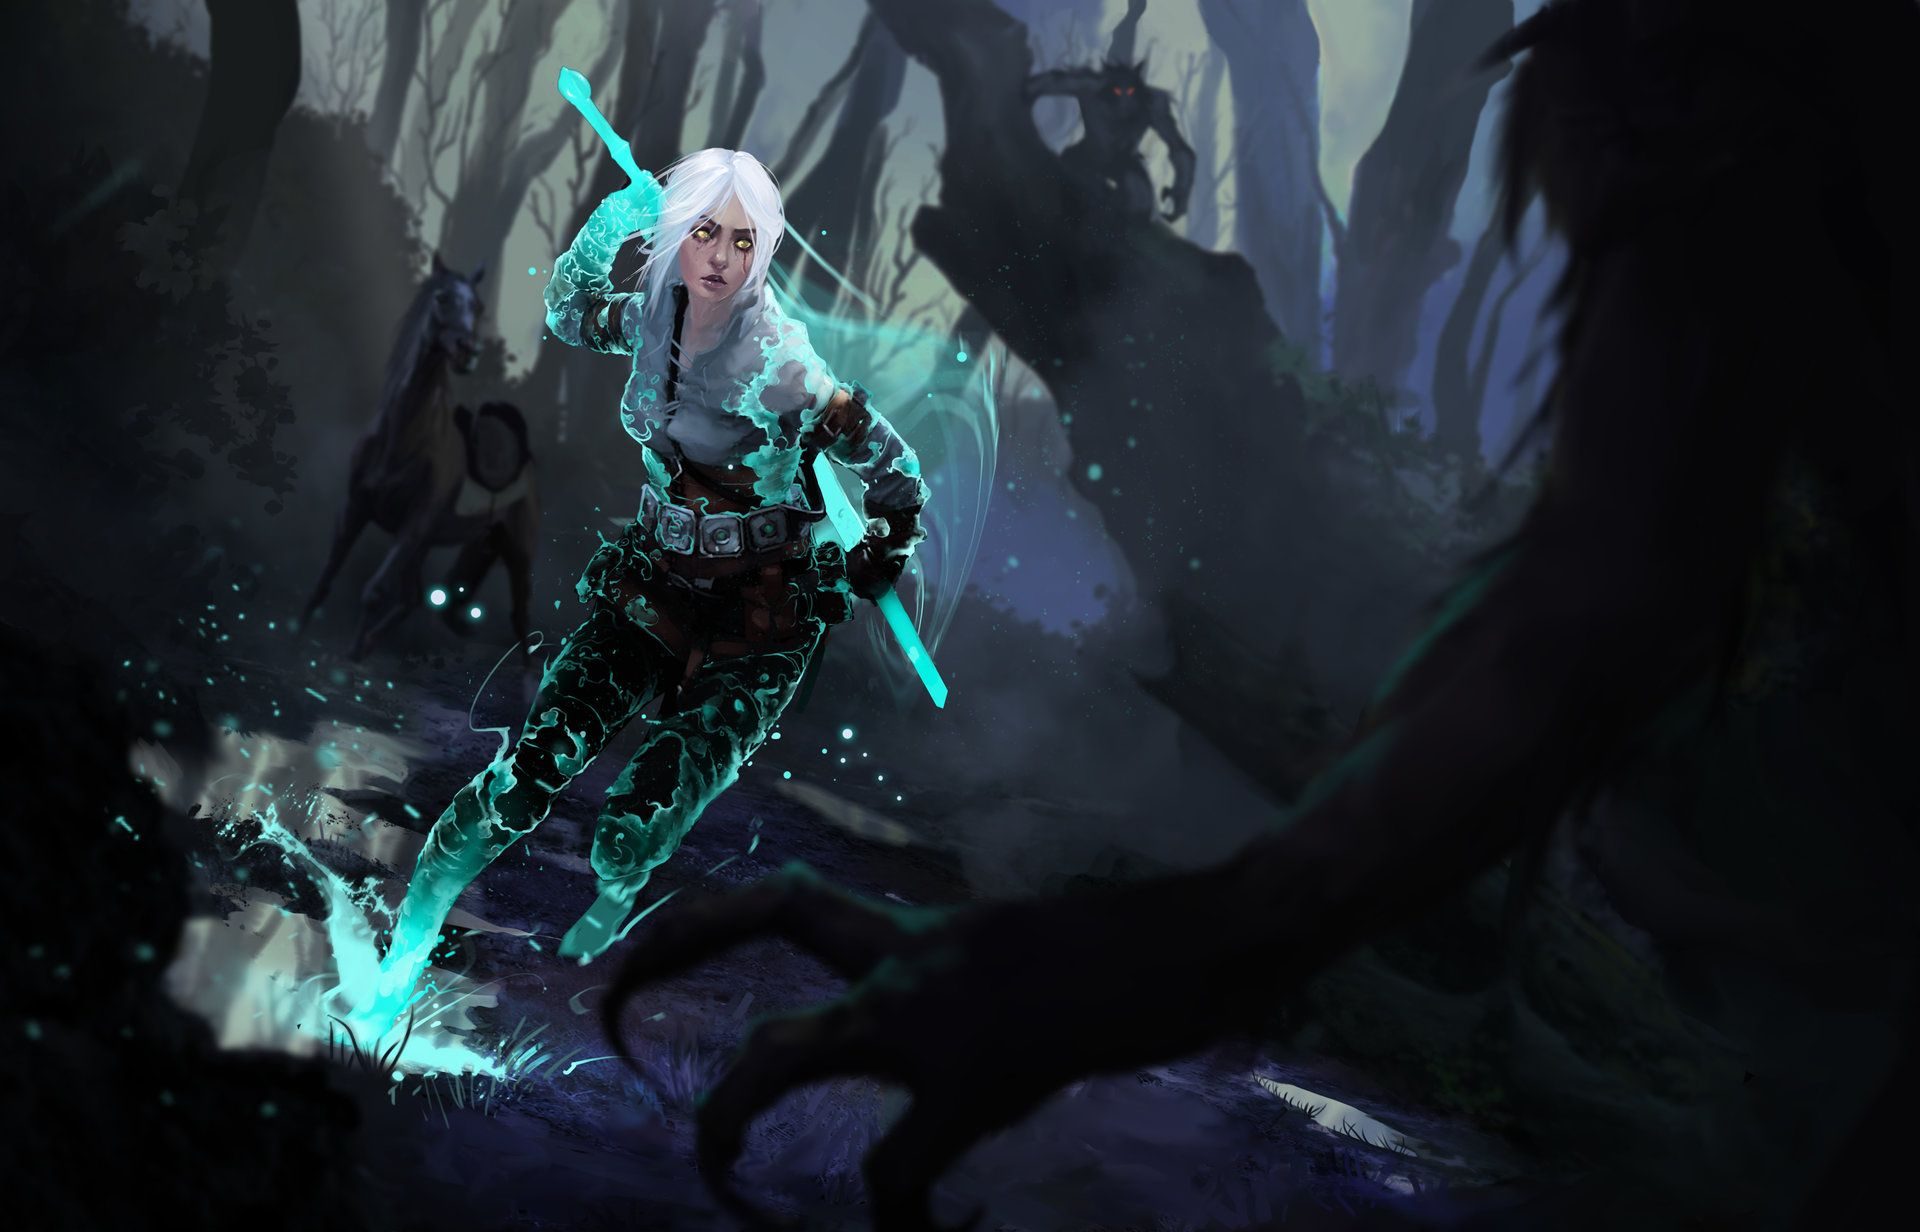 35 Witcher 3 Ciri Wallpapers Wallpaperboat